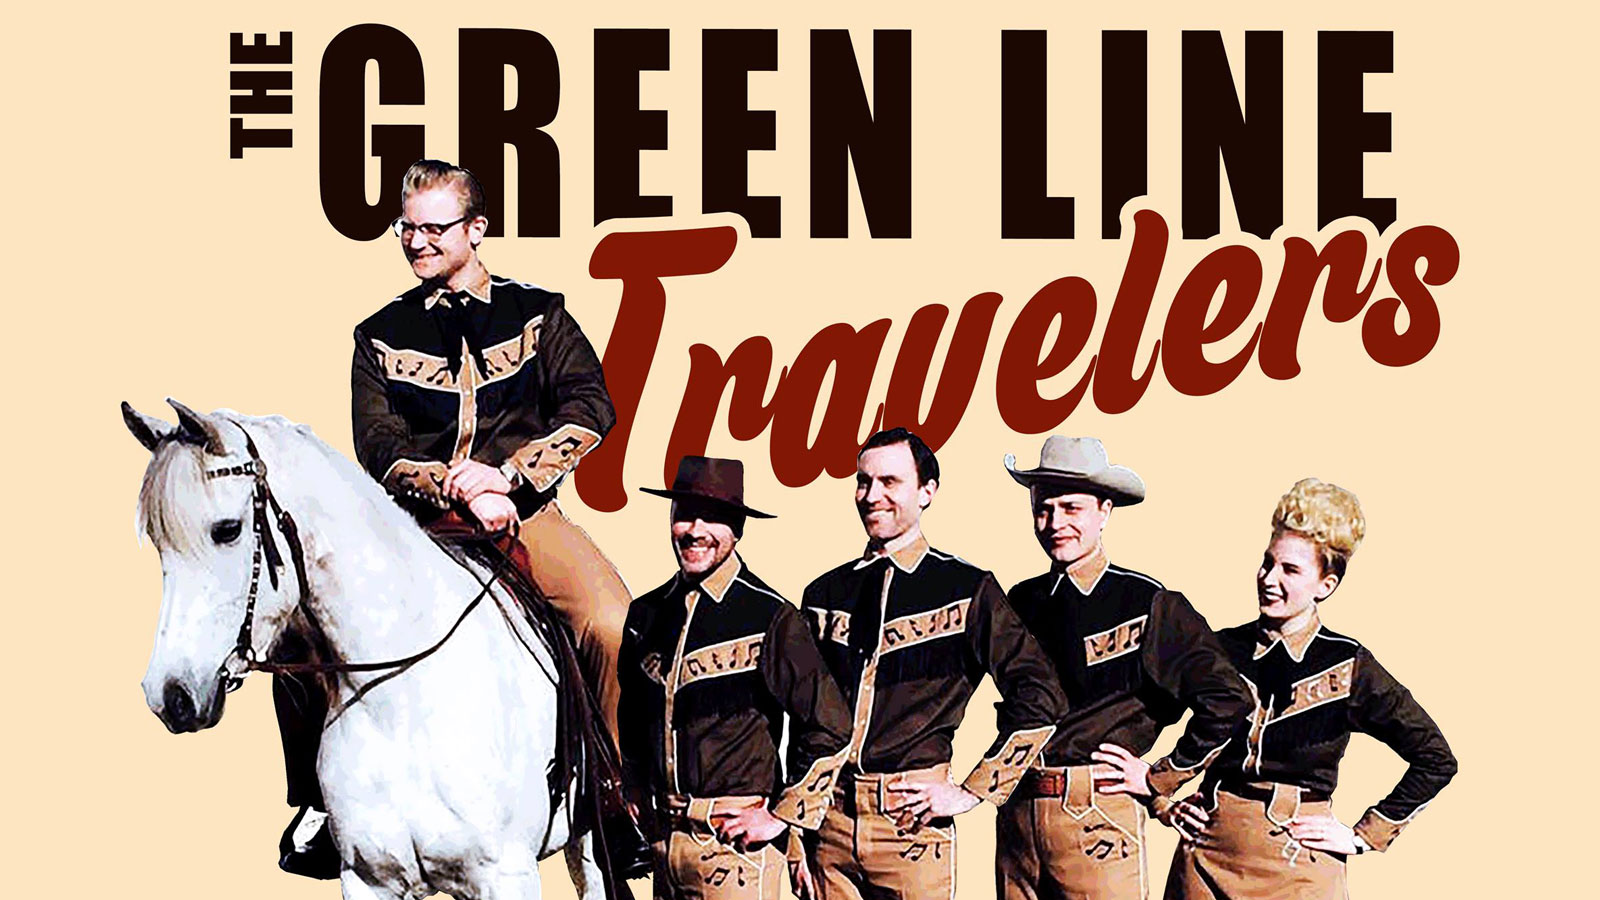 The Green Line Travelers